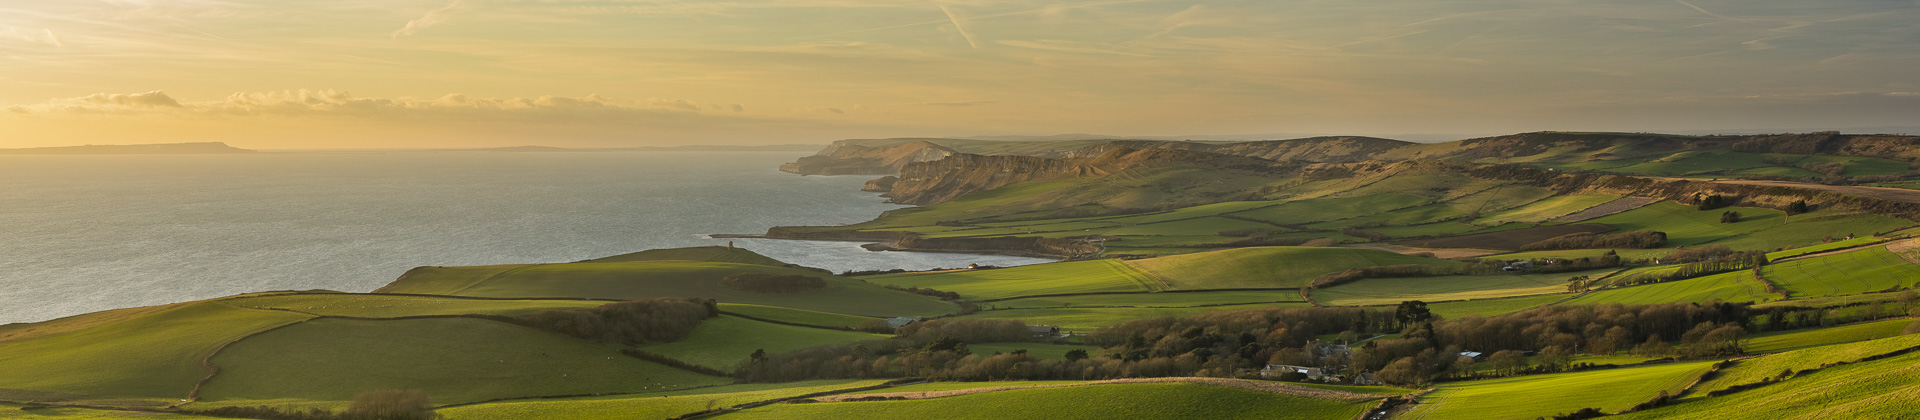 The Jurassic Coast with Portland, Clavell Tower and Kimmeridge Bay from Swyre Head, Purbeck, Dorset, England, UK